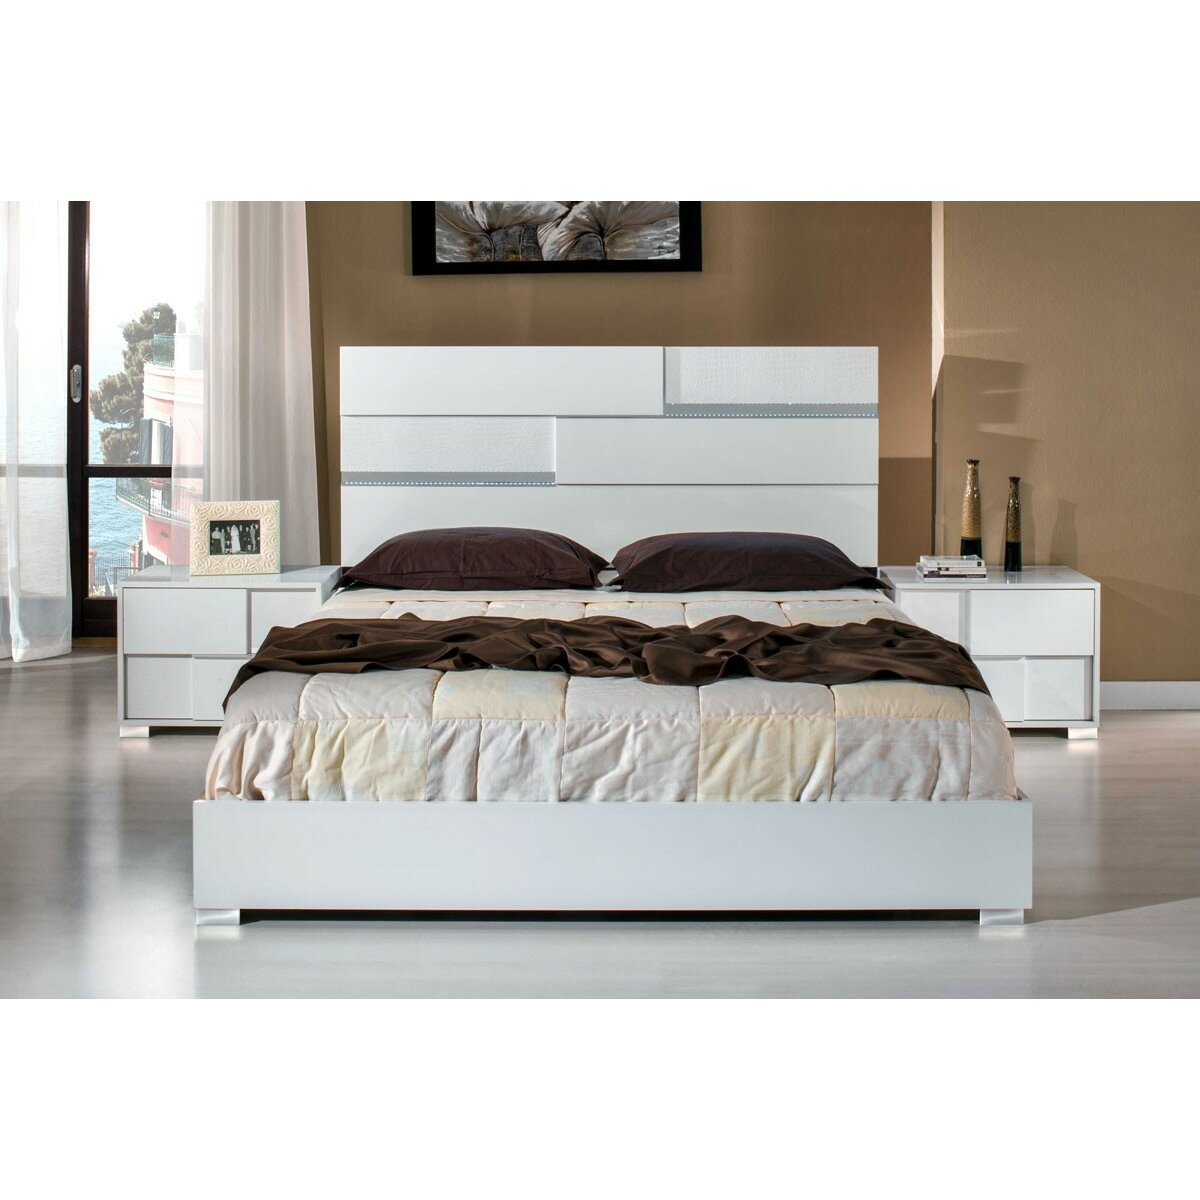 5 piece bedroom set queen kisekae rakuen com 5 piece bedroom set queen kisekae rakuen com